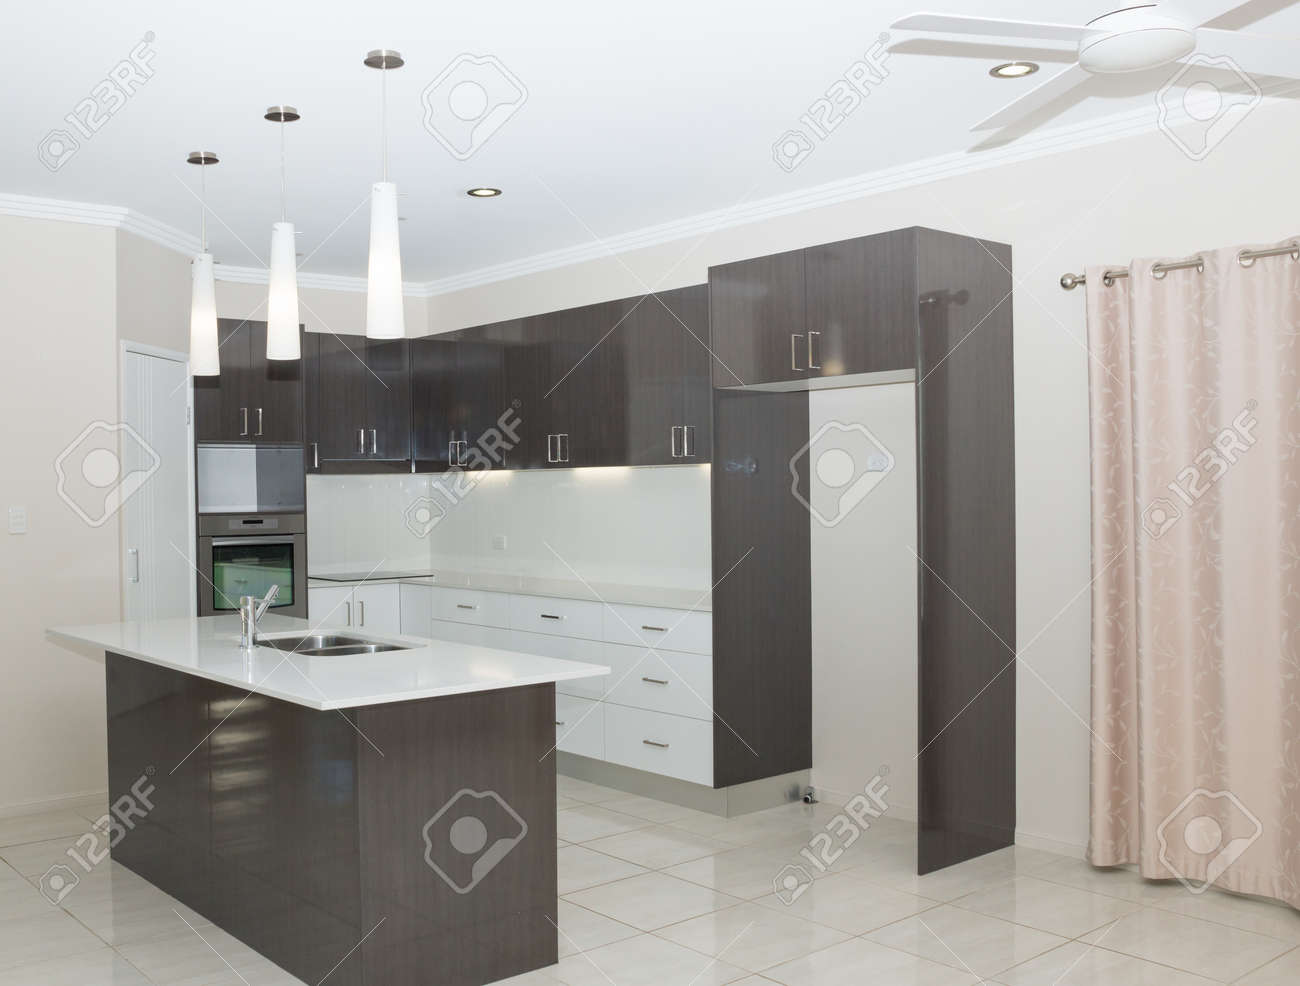 New Modern Kitchen With Island Bench And Hanging Lights Stock Photo Picture And Royalty Free Image Image 72156038